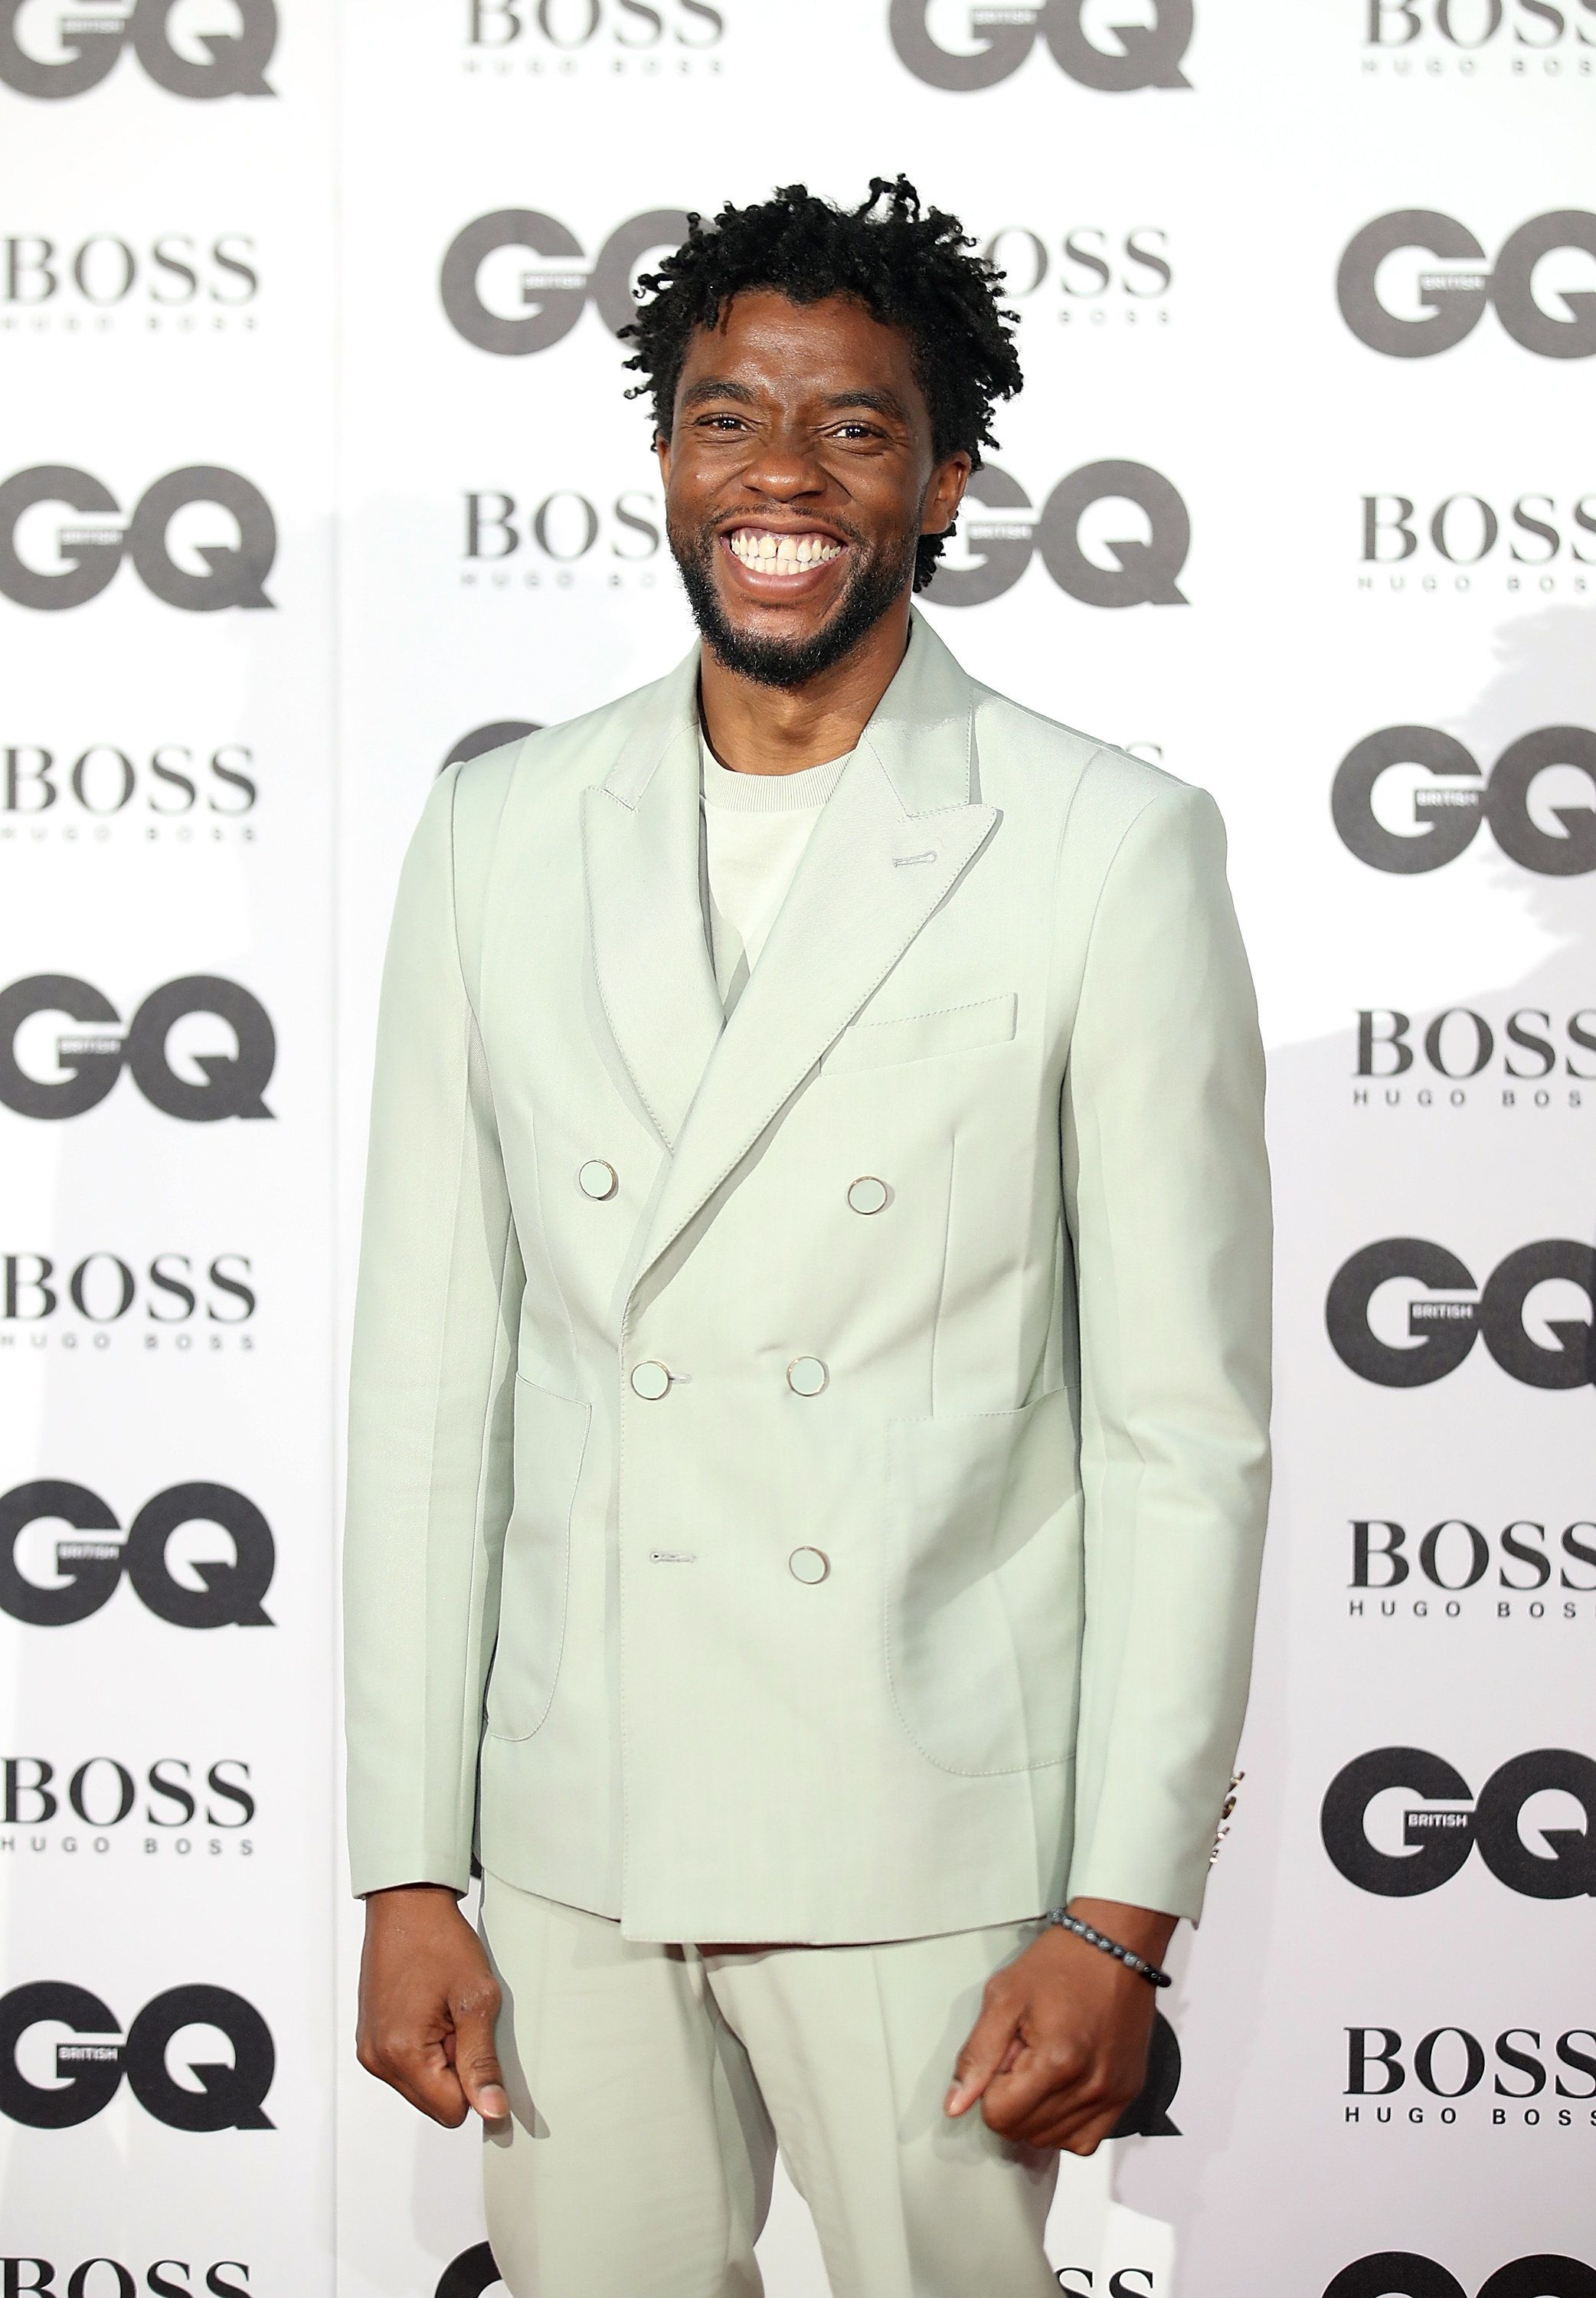 Looks We Love: Chadwick Boseman's Pastel Suit At The GQ Men Of The Year